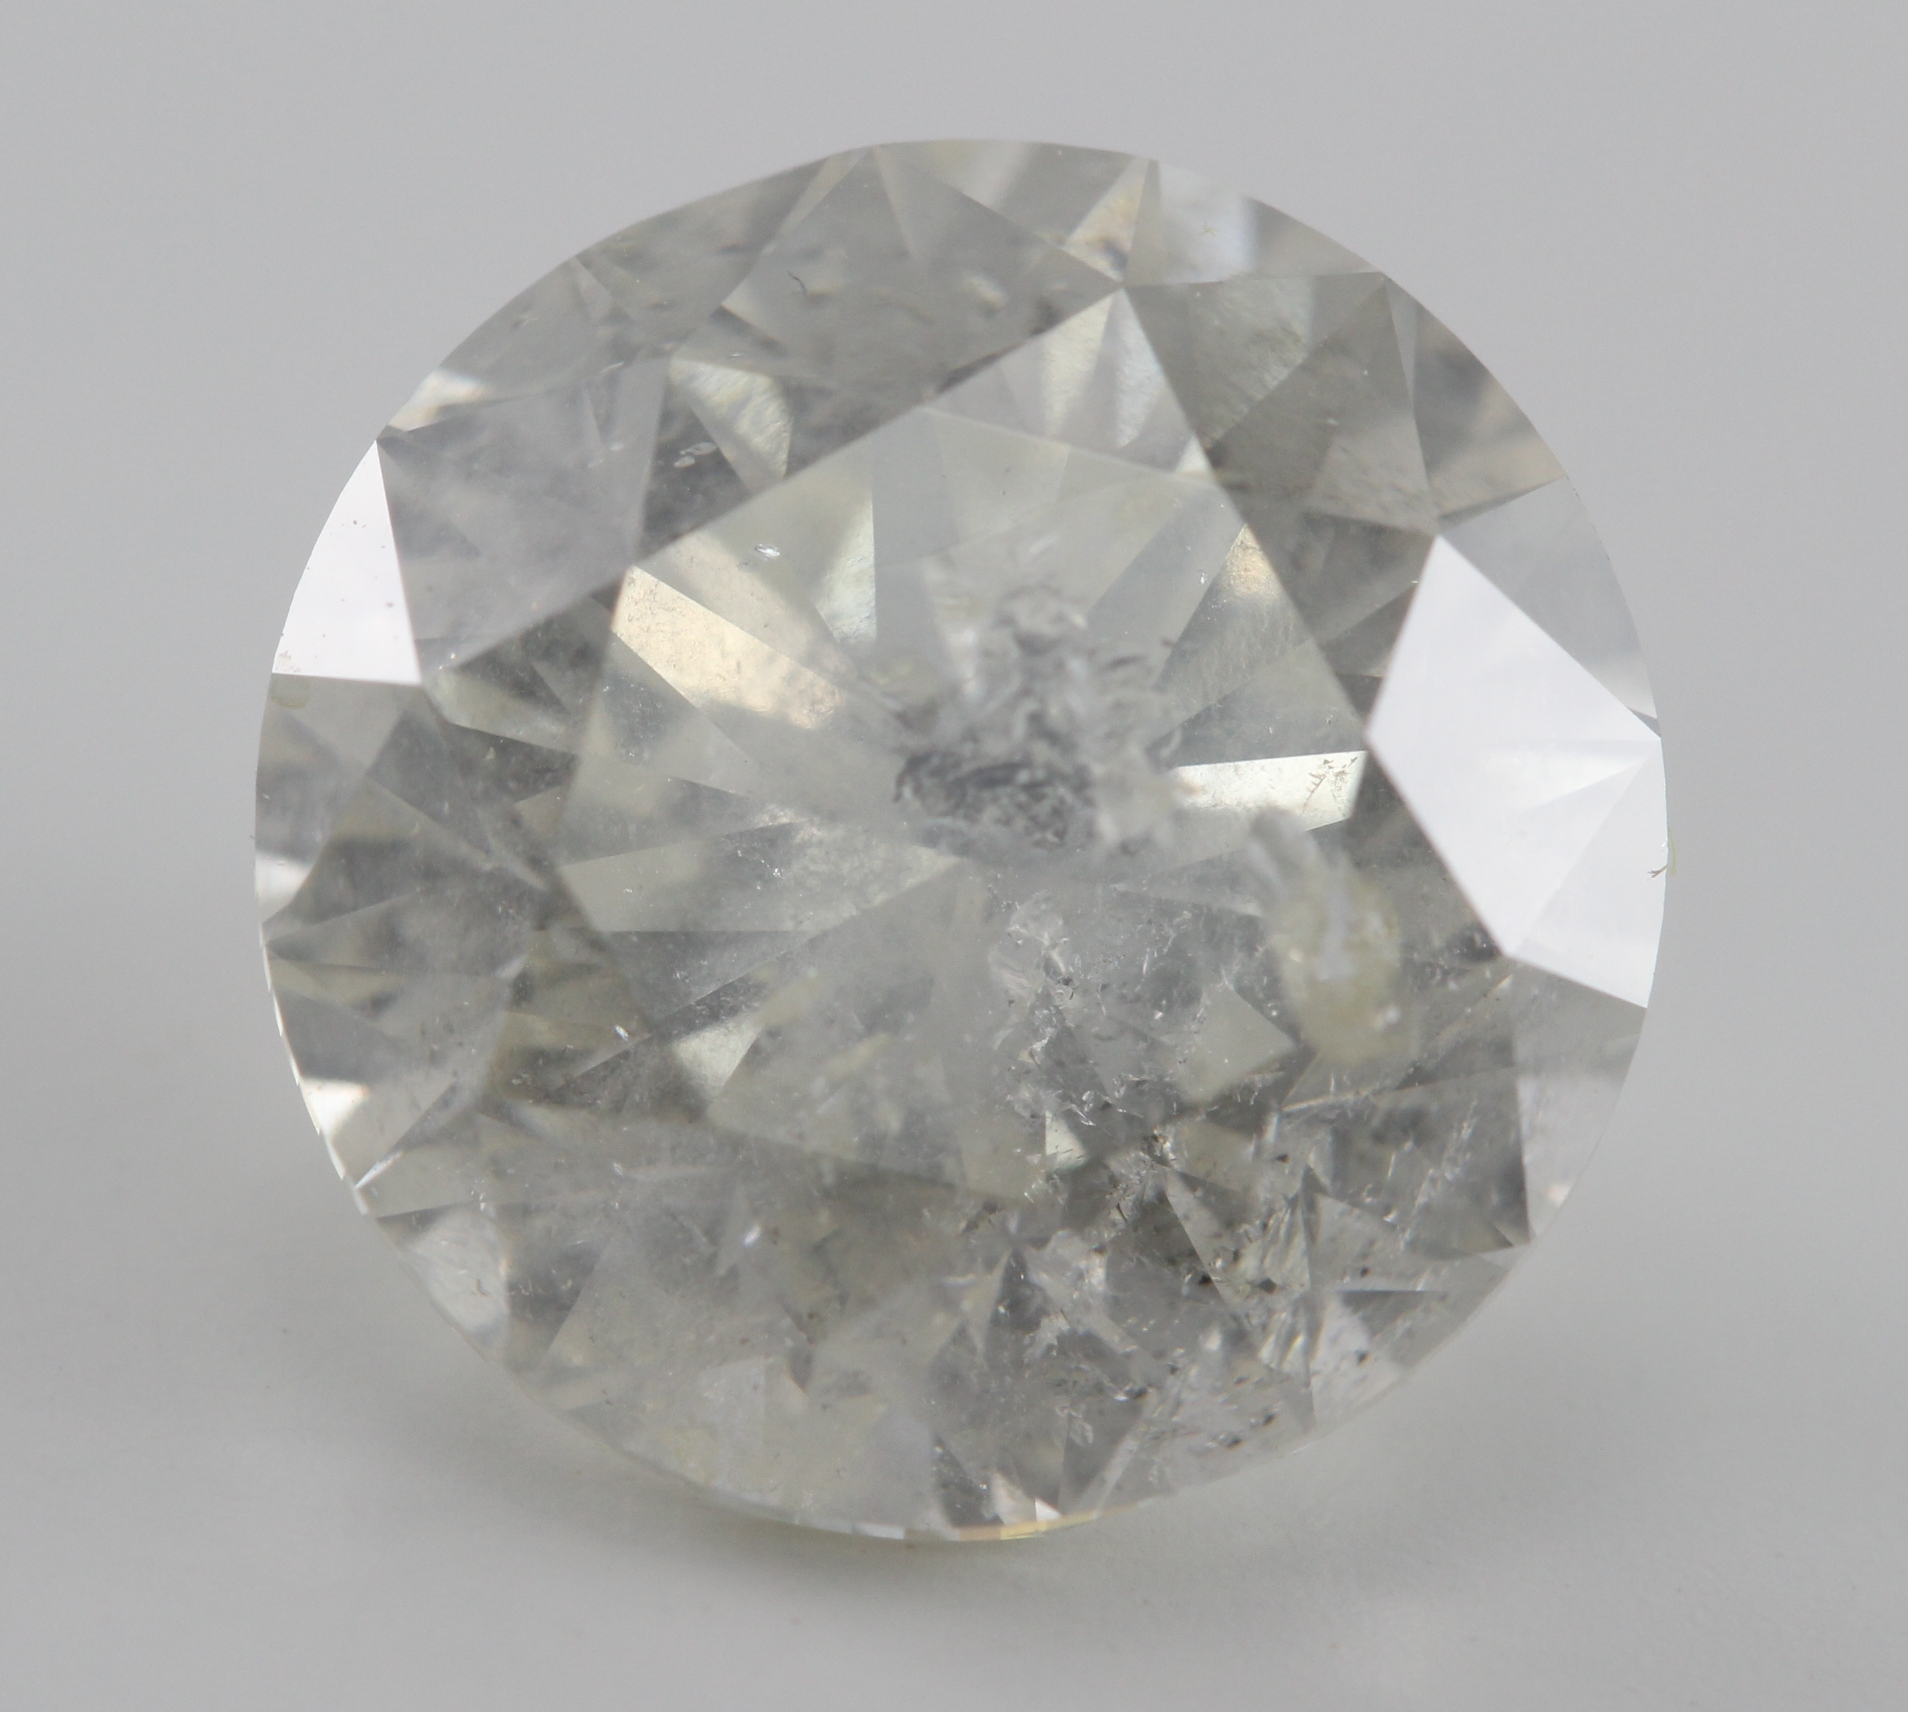 j round diamond orig gia carat photograph clarity color in graded diamonds